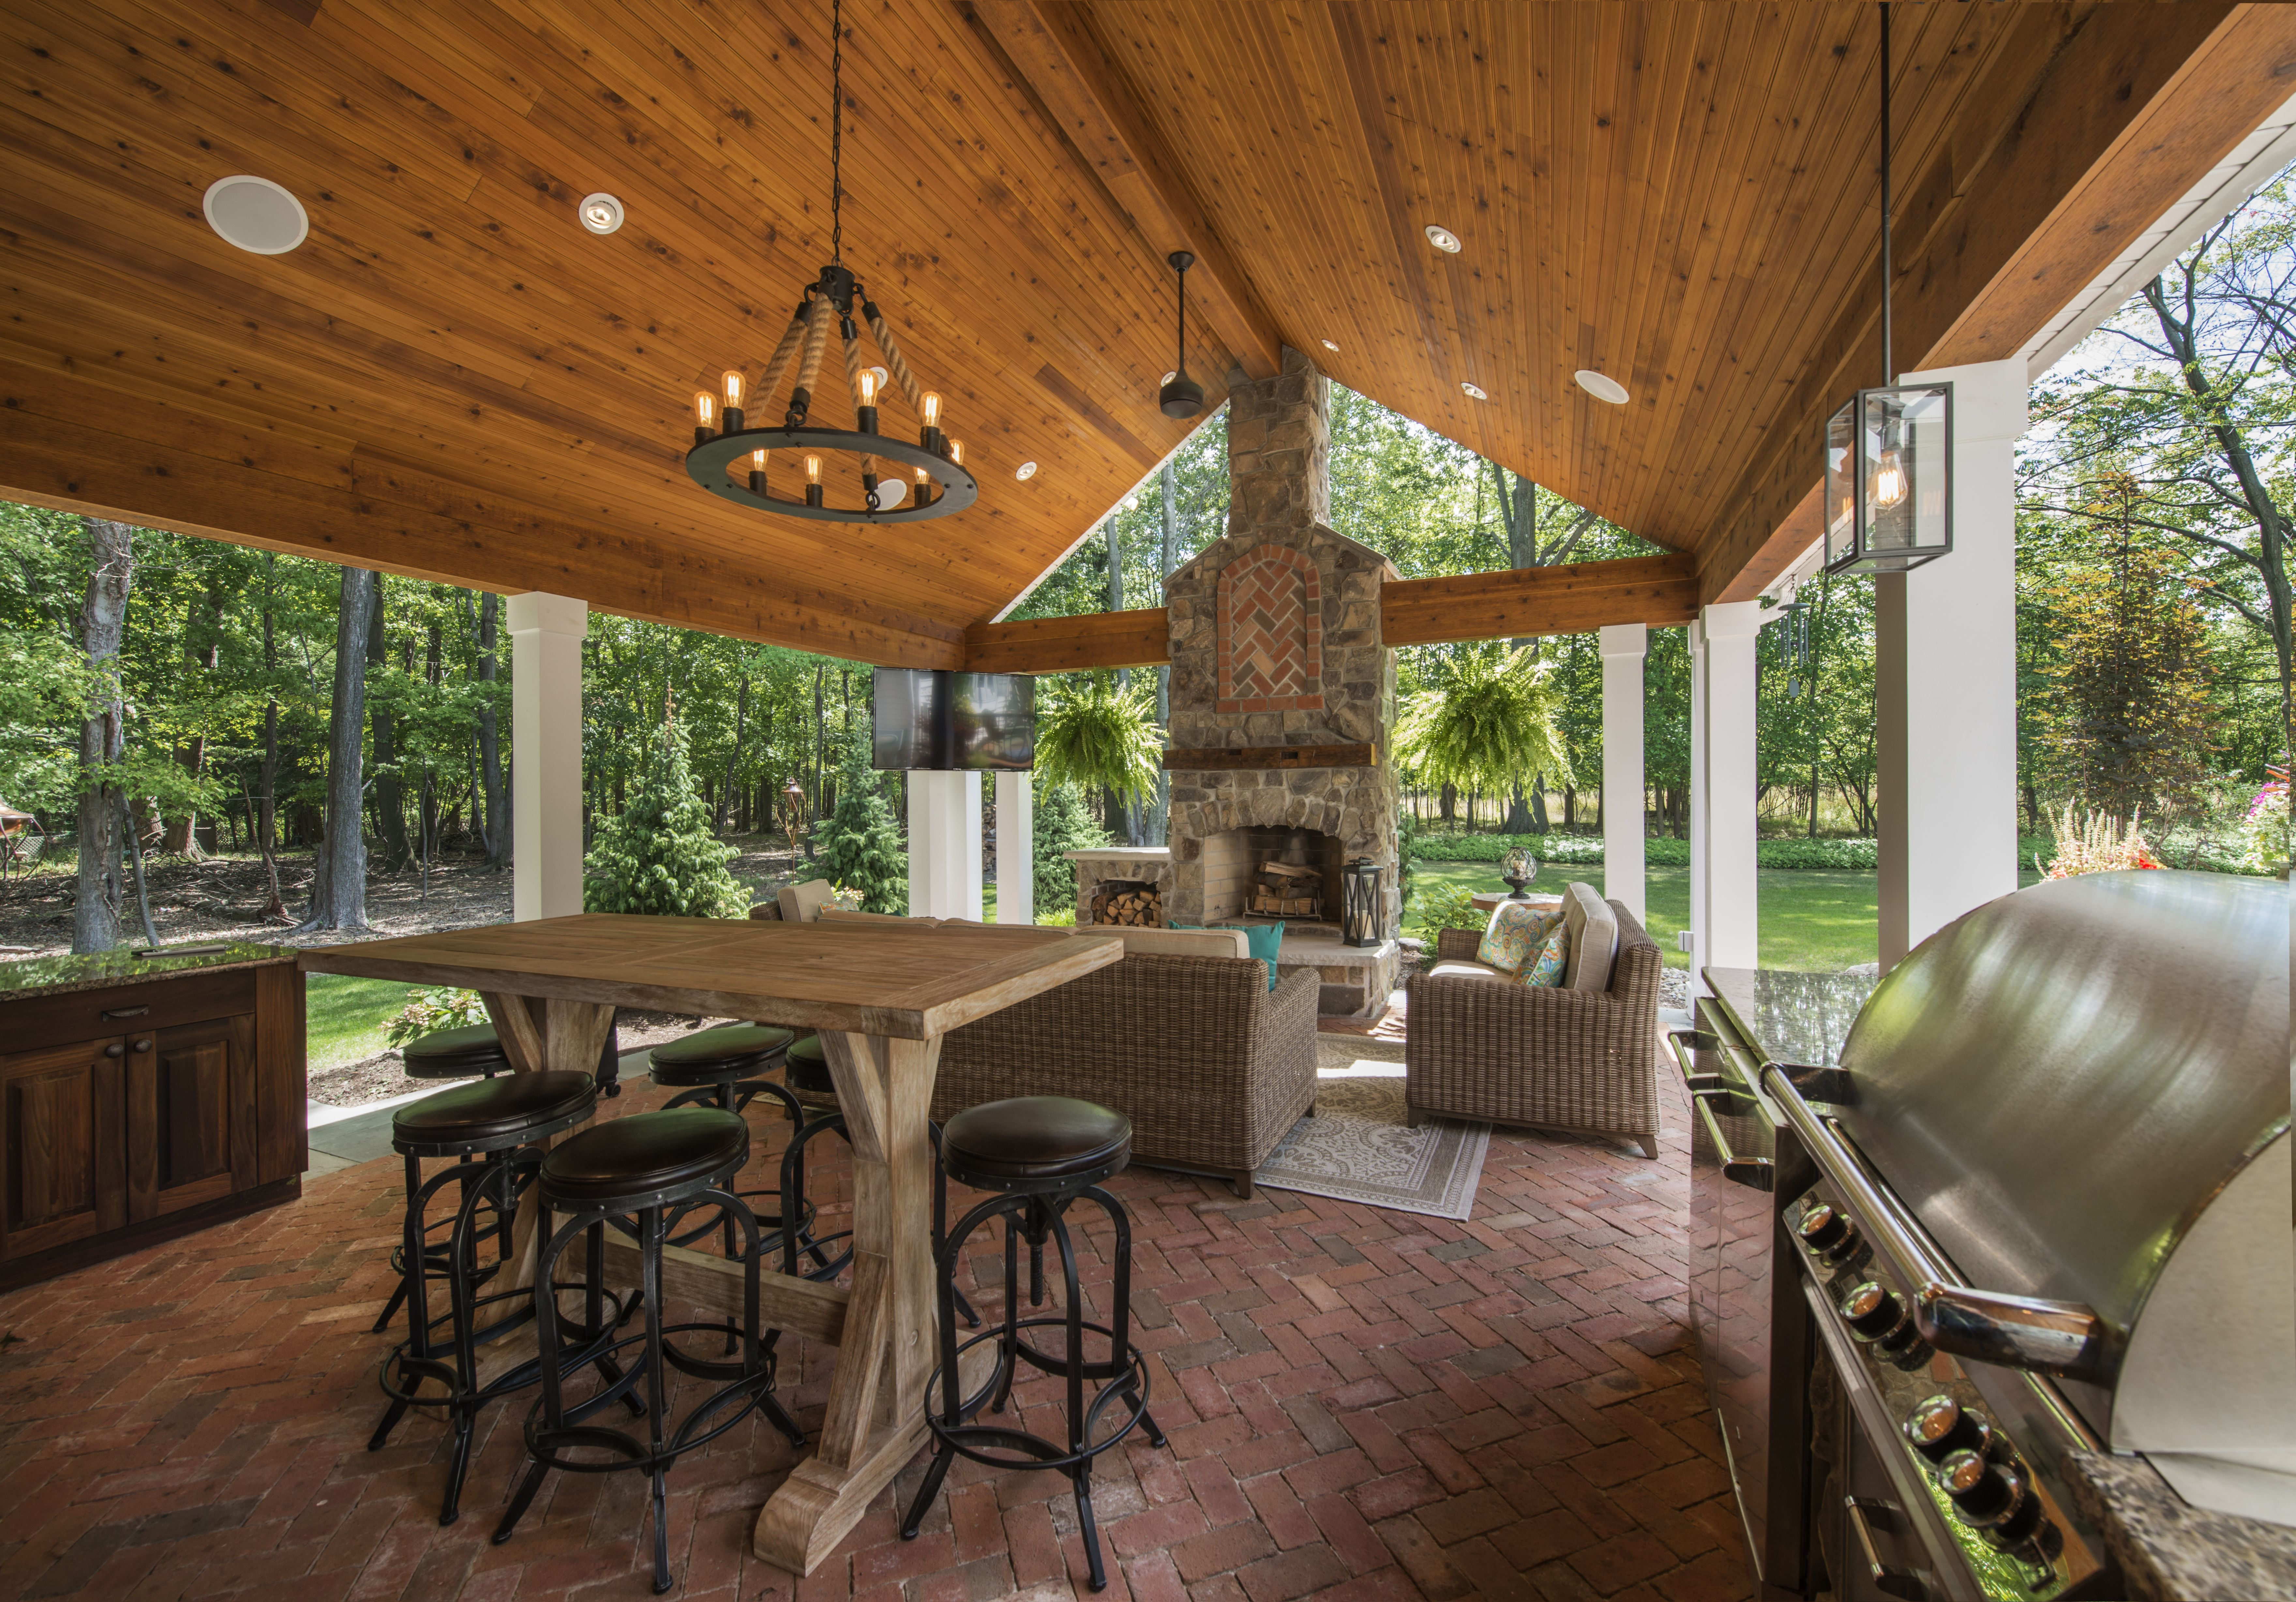 stunning rustic outdoor living space complete with fireplace grill outdoor kitchen and ample on outdoor kitchen on deck id=78509